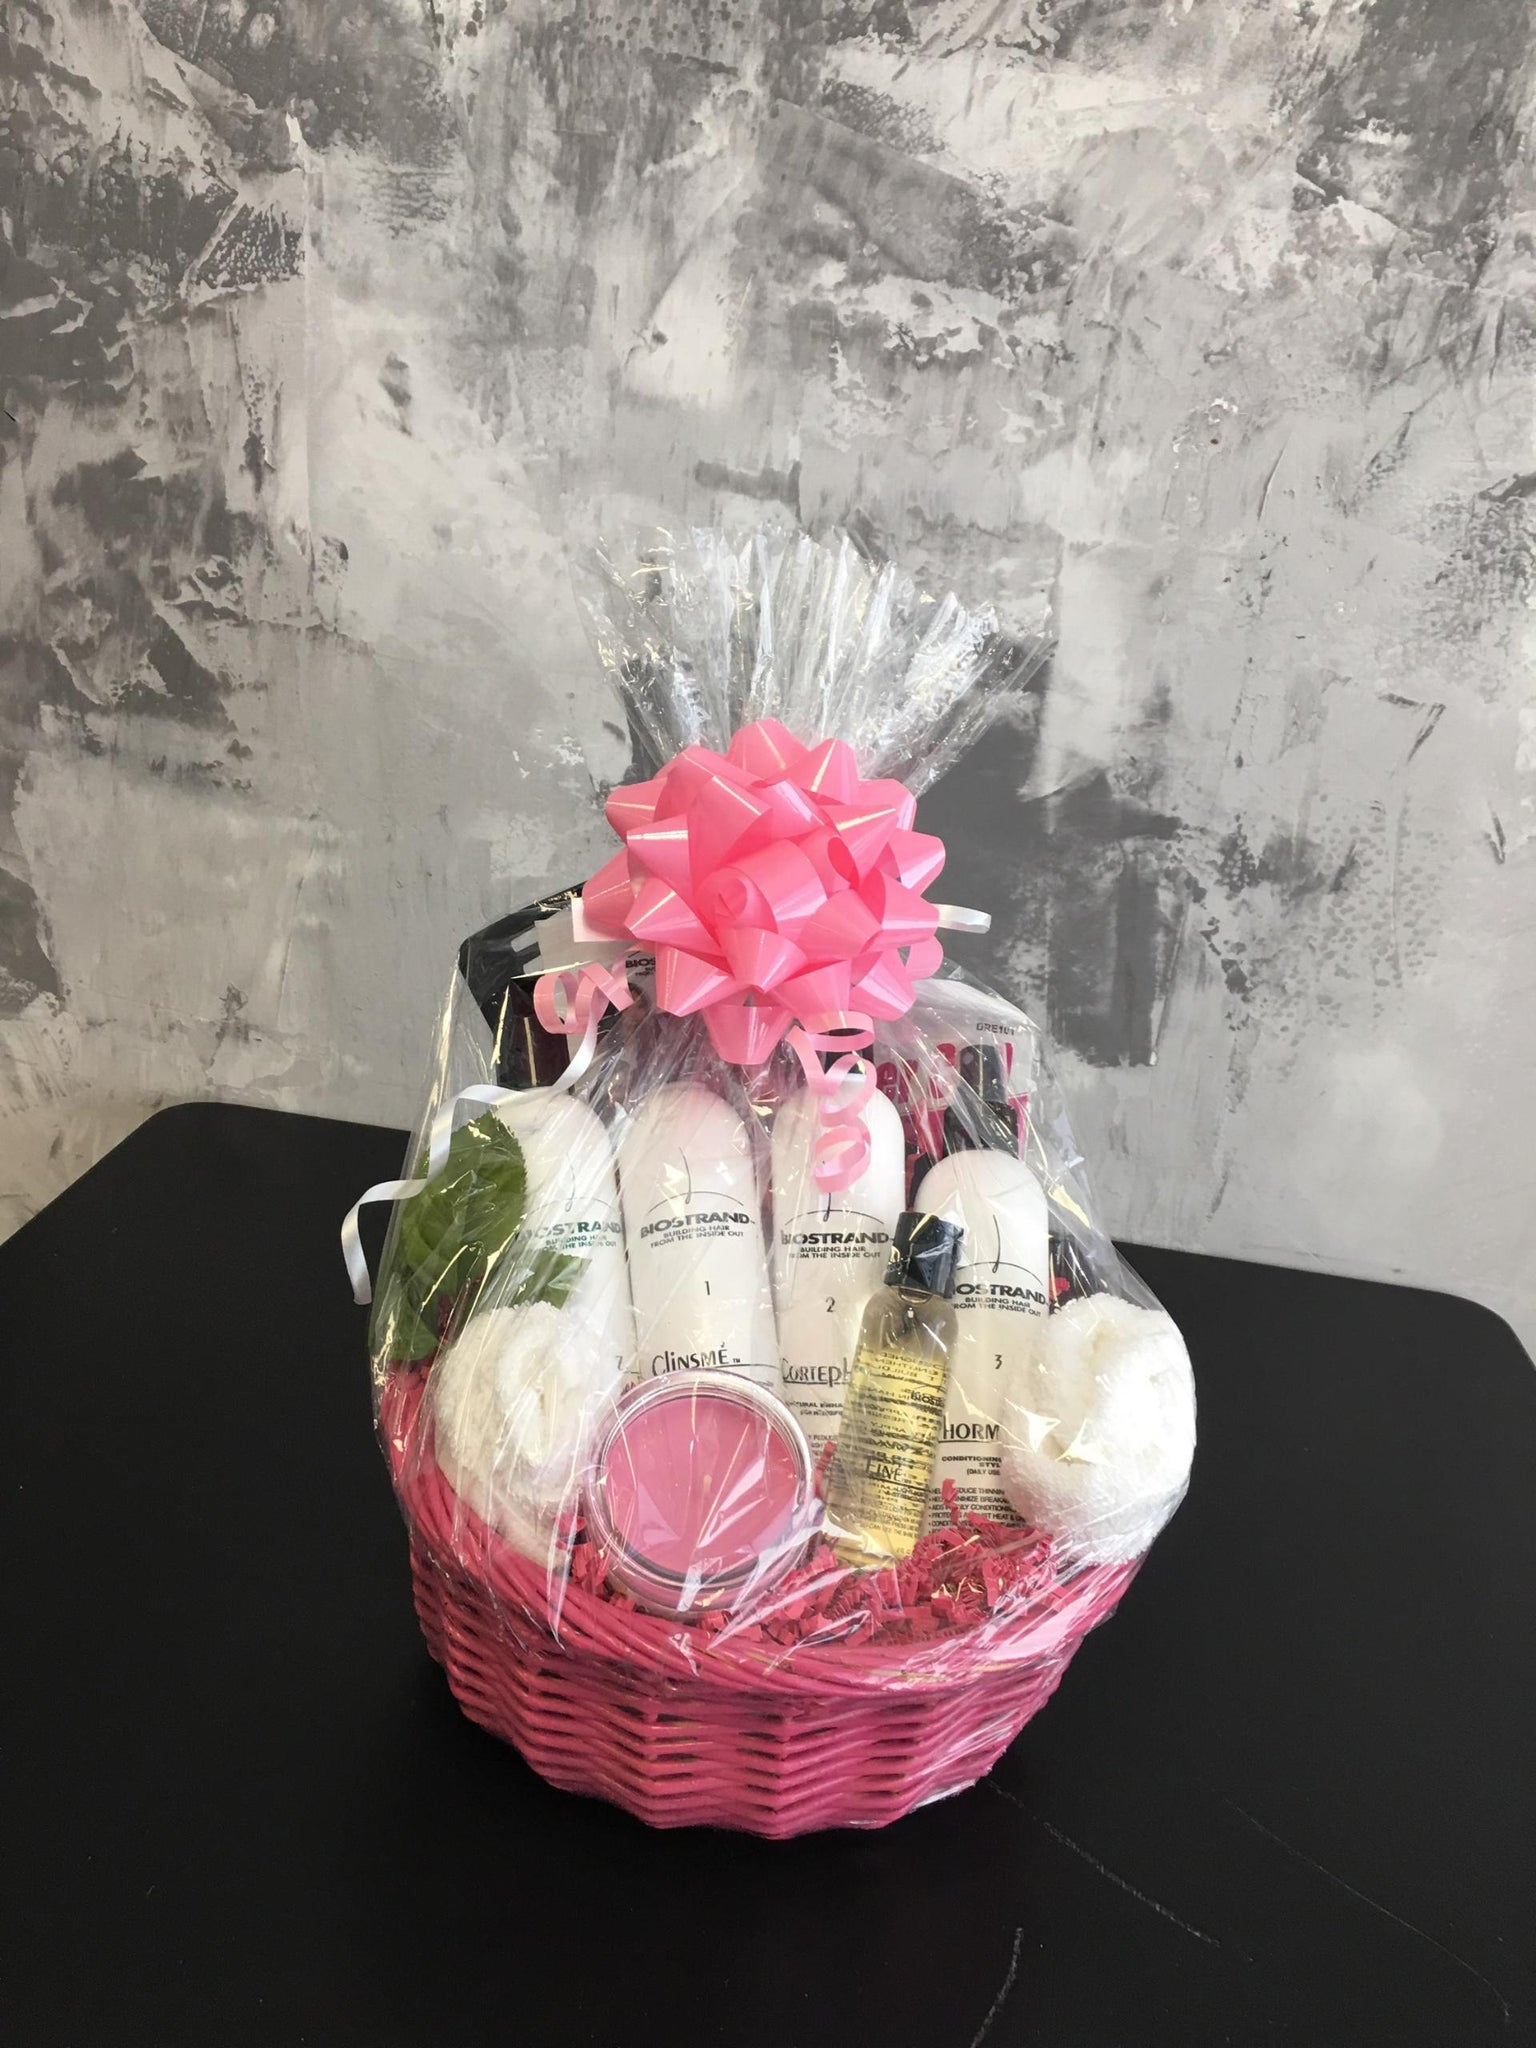 BIOSTRAND Signature Collection 8oz with Phorme Original (Pink Basket)